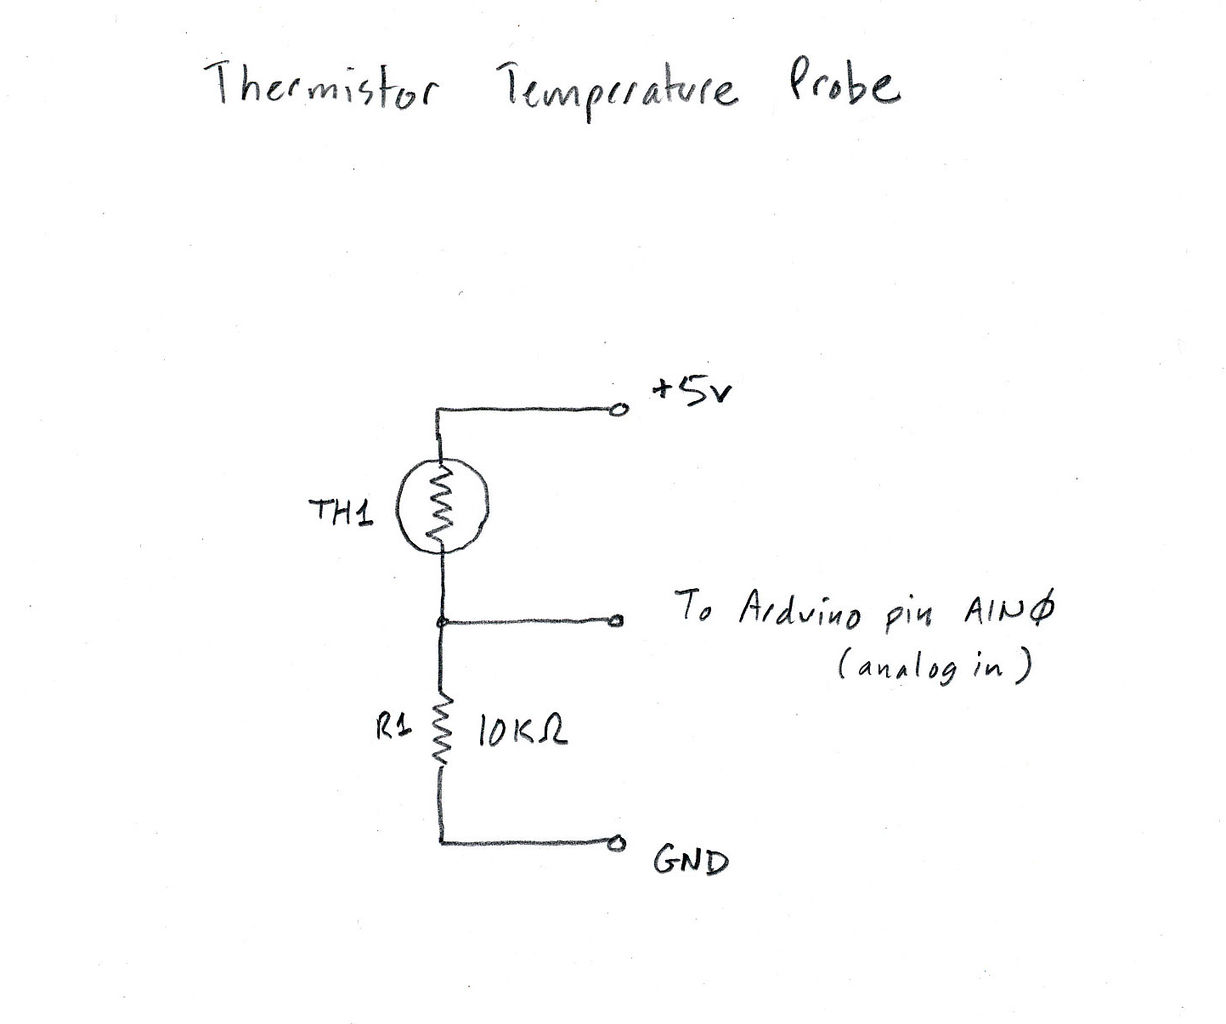 symbol for thermistor wiring schematic schematic symbol